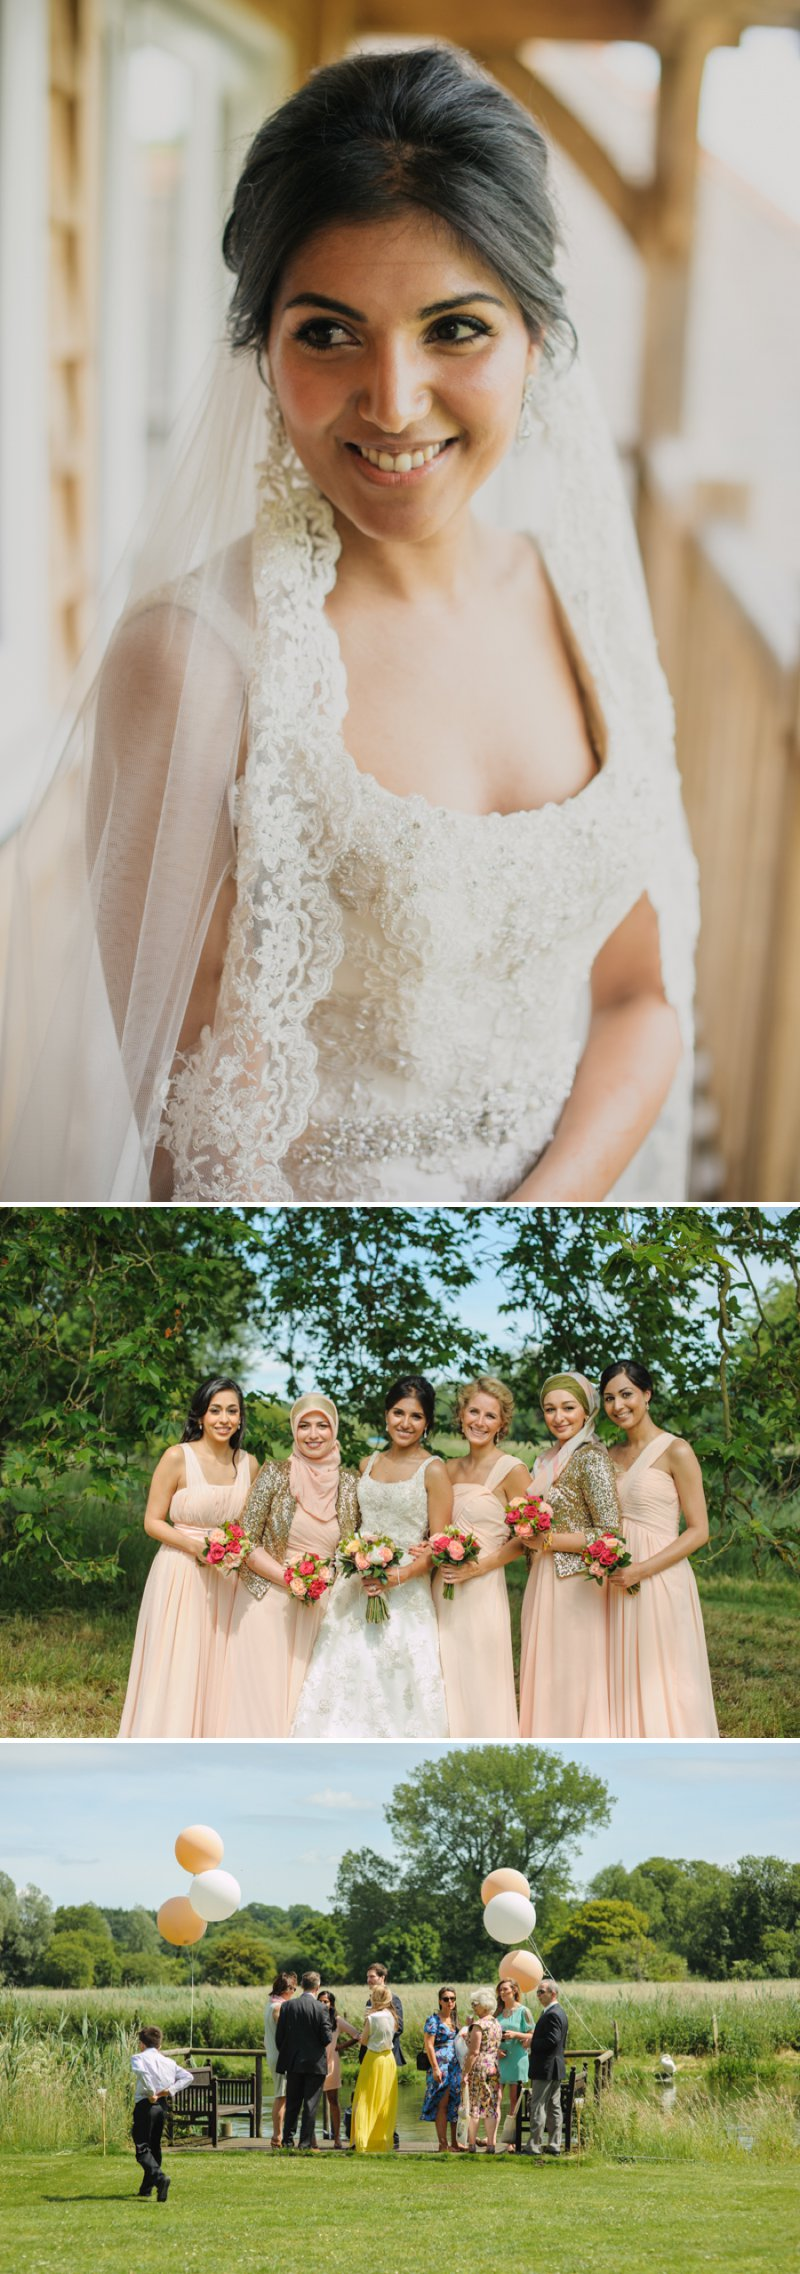 Elegant Tipi Wedding At Houghton Lodge In Hampshire With An Iraqi Bride In Lace Justin Alexander Gown With A Lace Edged Veil And Groom In Blue Three Piece Suit From Reiss With Bridemaids In Pink 1 Arabic Glamour In The Heart Of Hampshire.